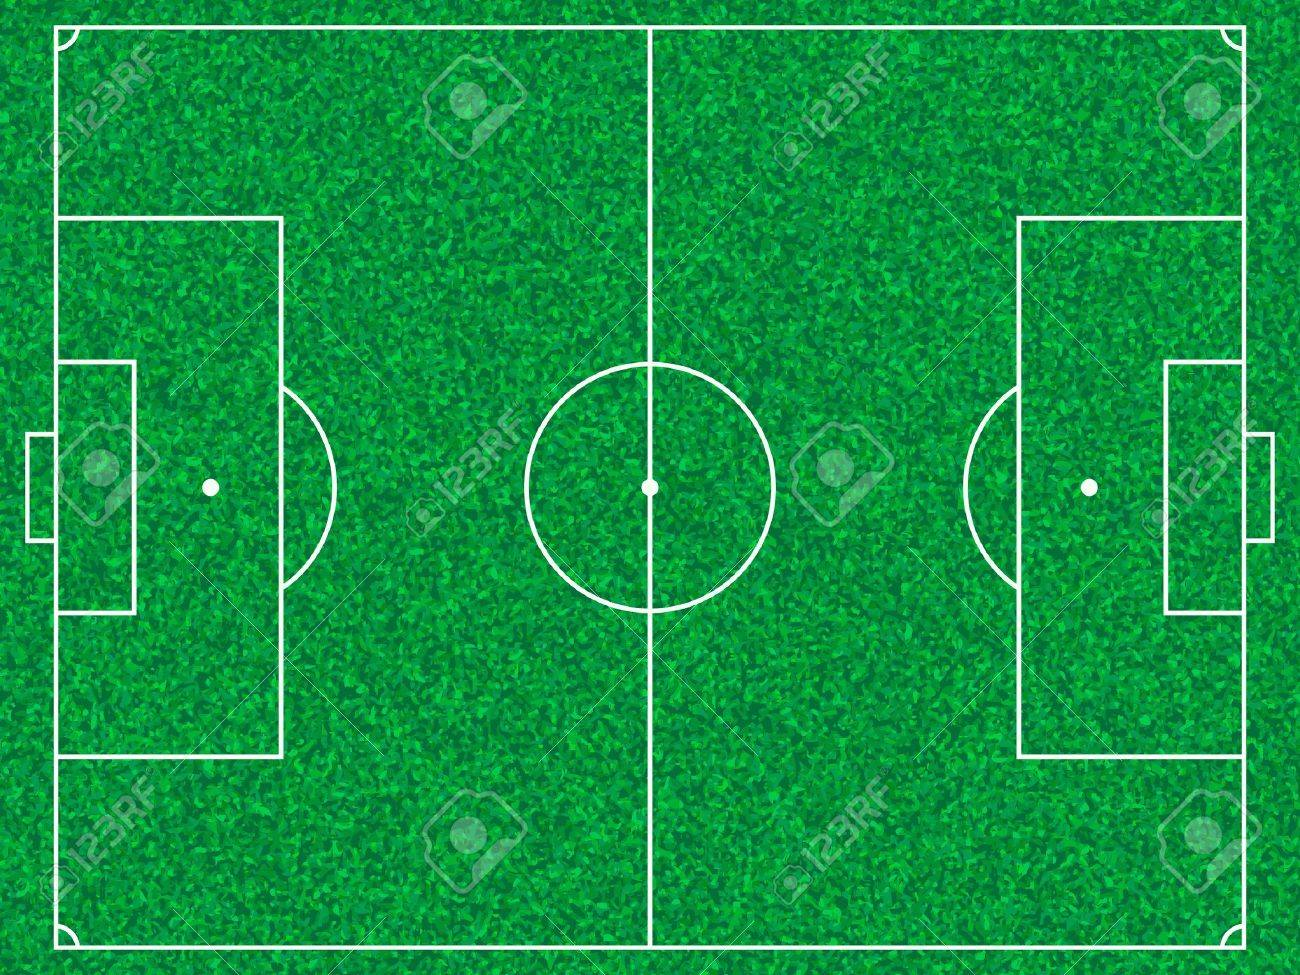 Soccer field with grass texture. Stock Vector - 9122103